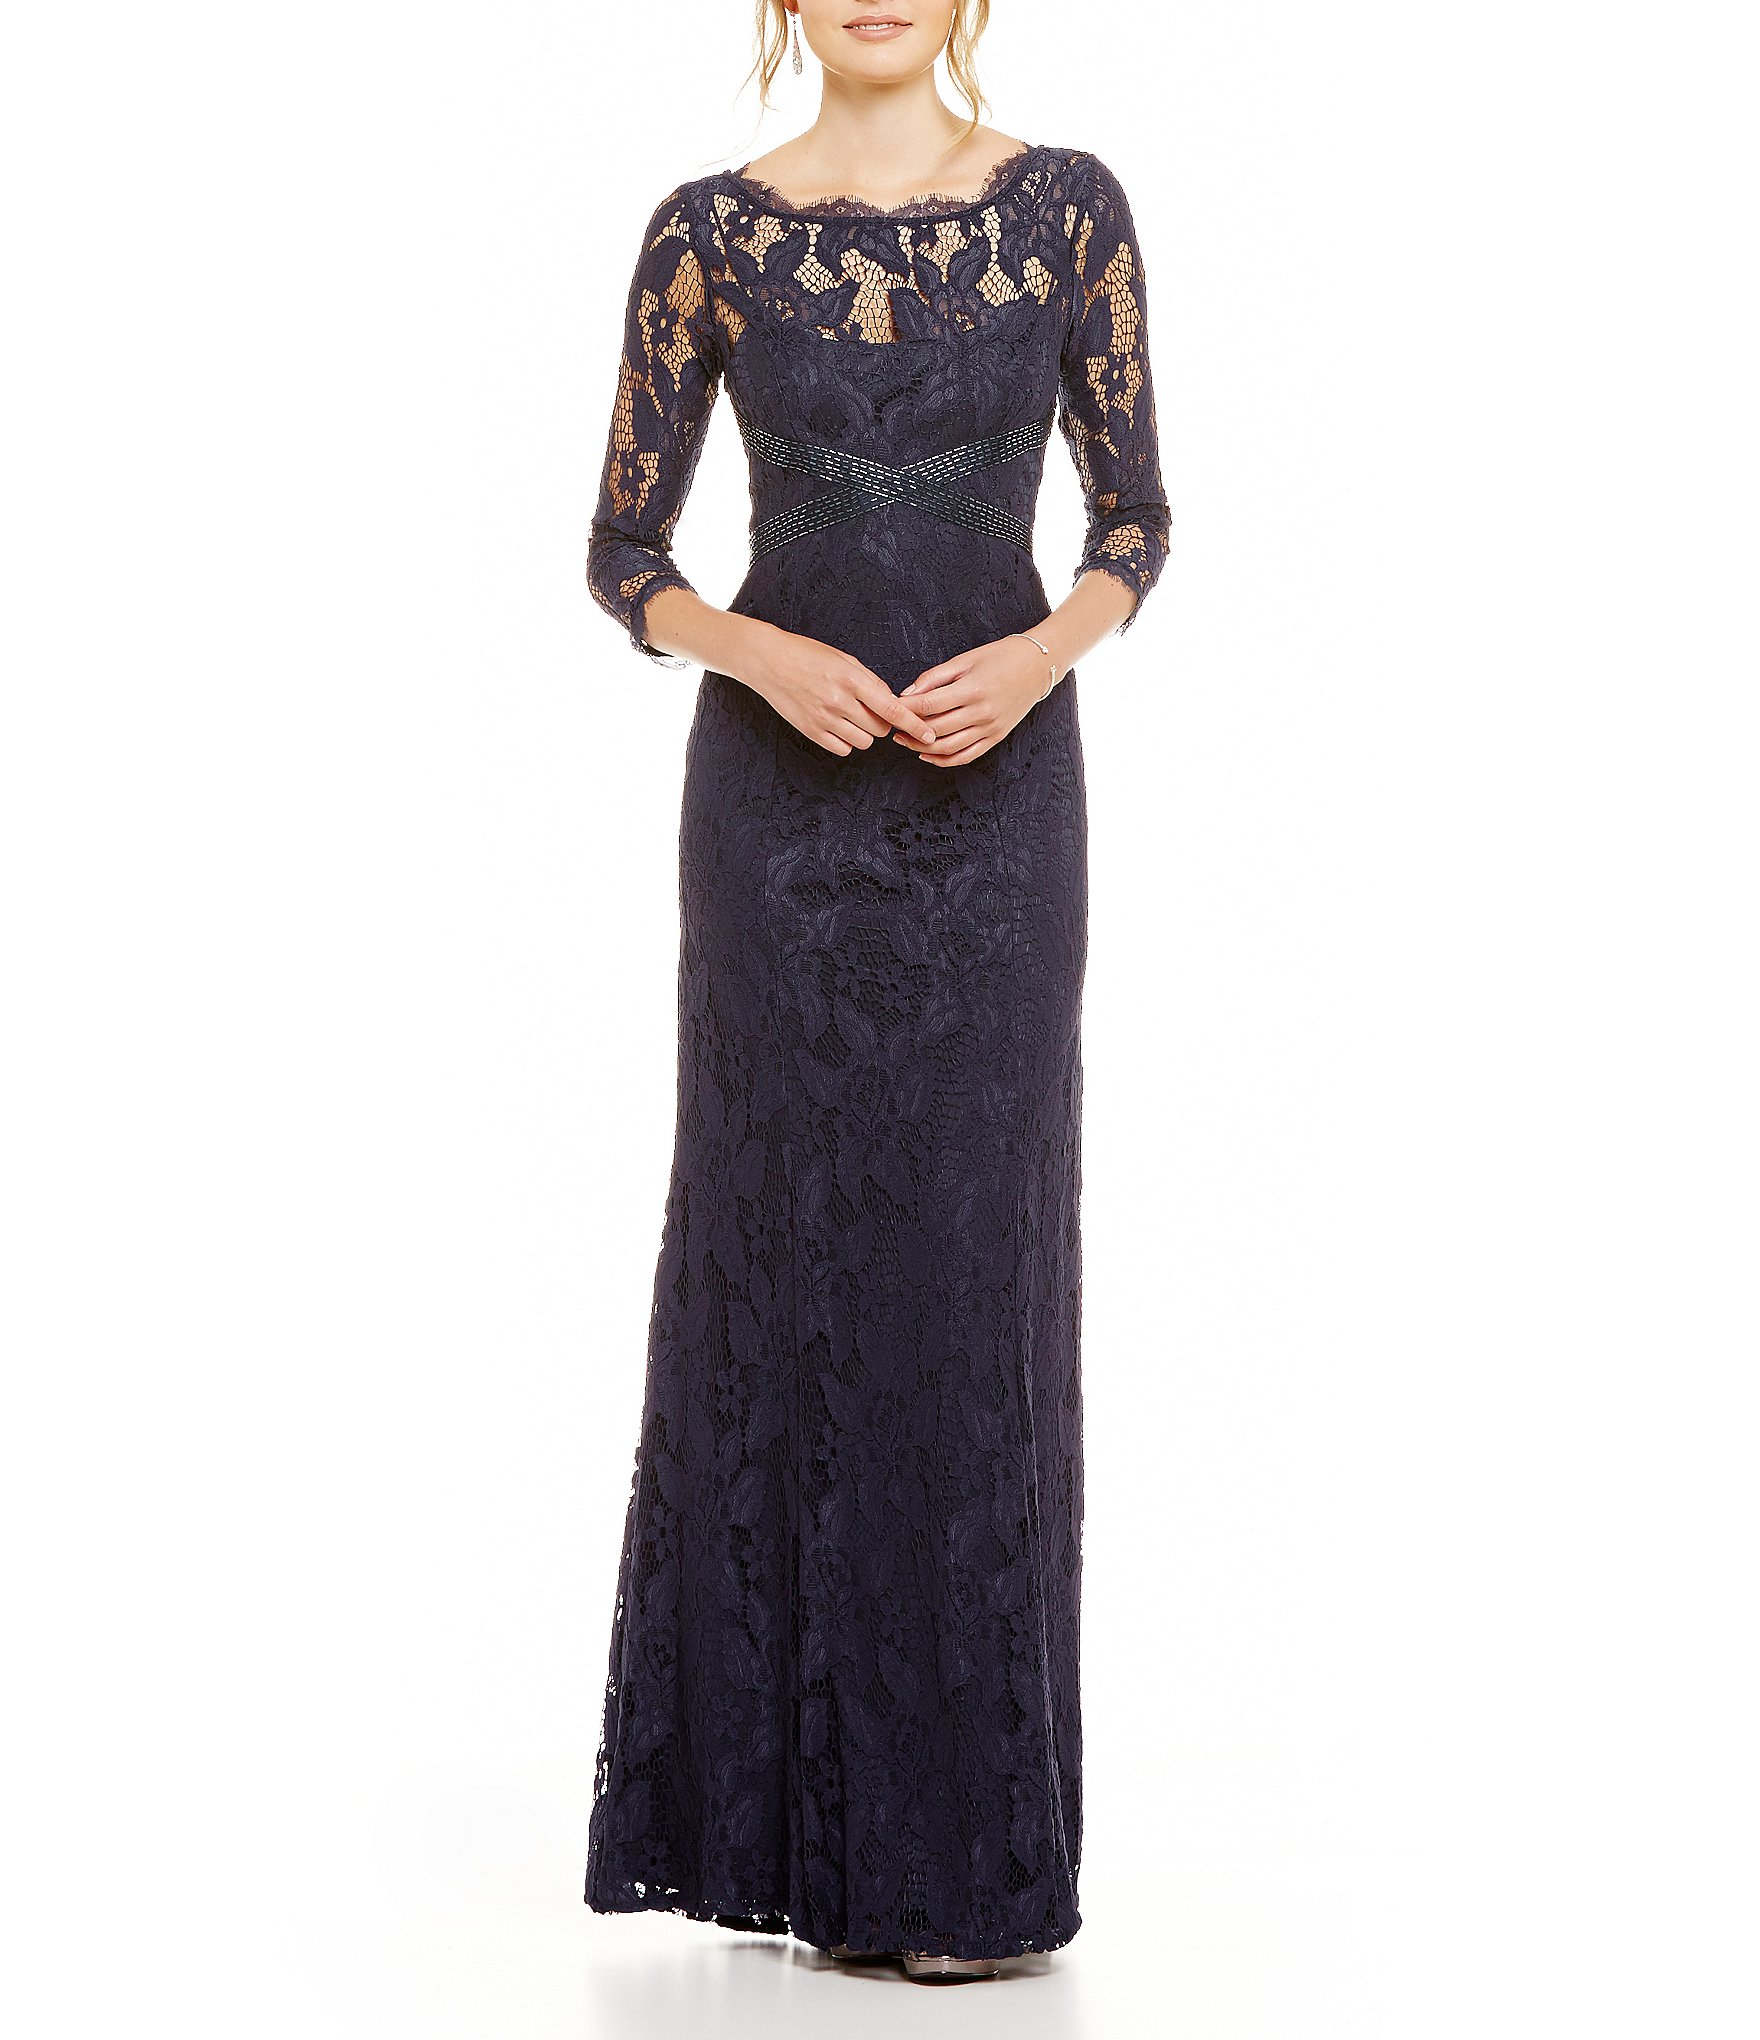 Adrianna Papell Beaded Lace 3 4 Sleeve Gown Dillards